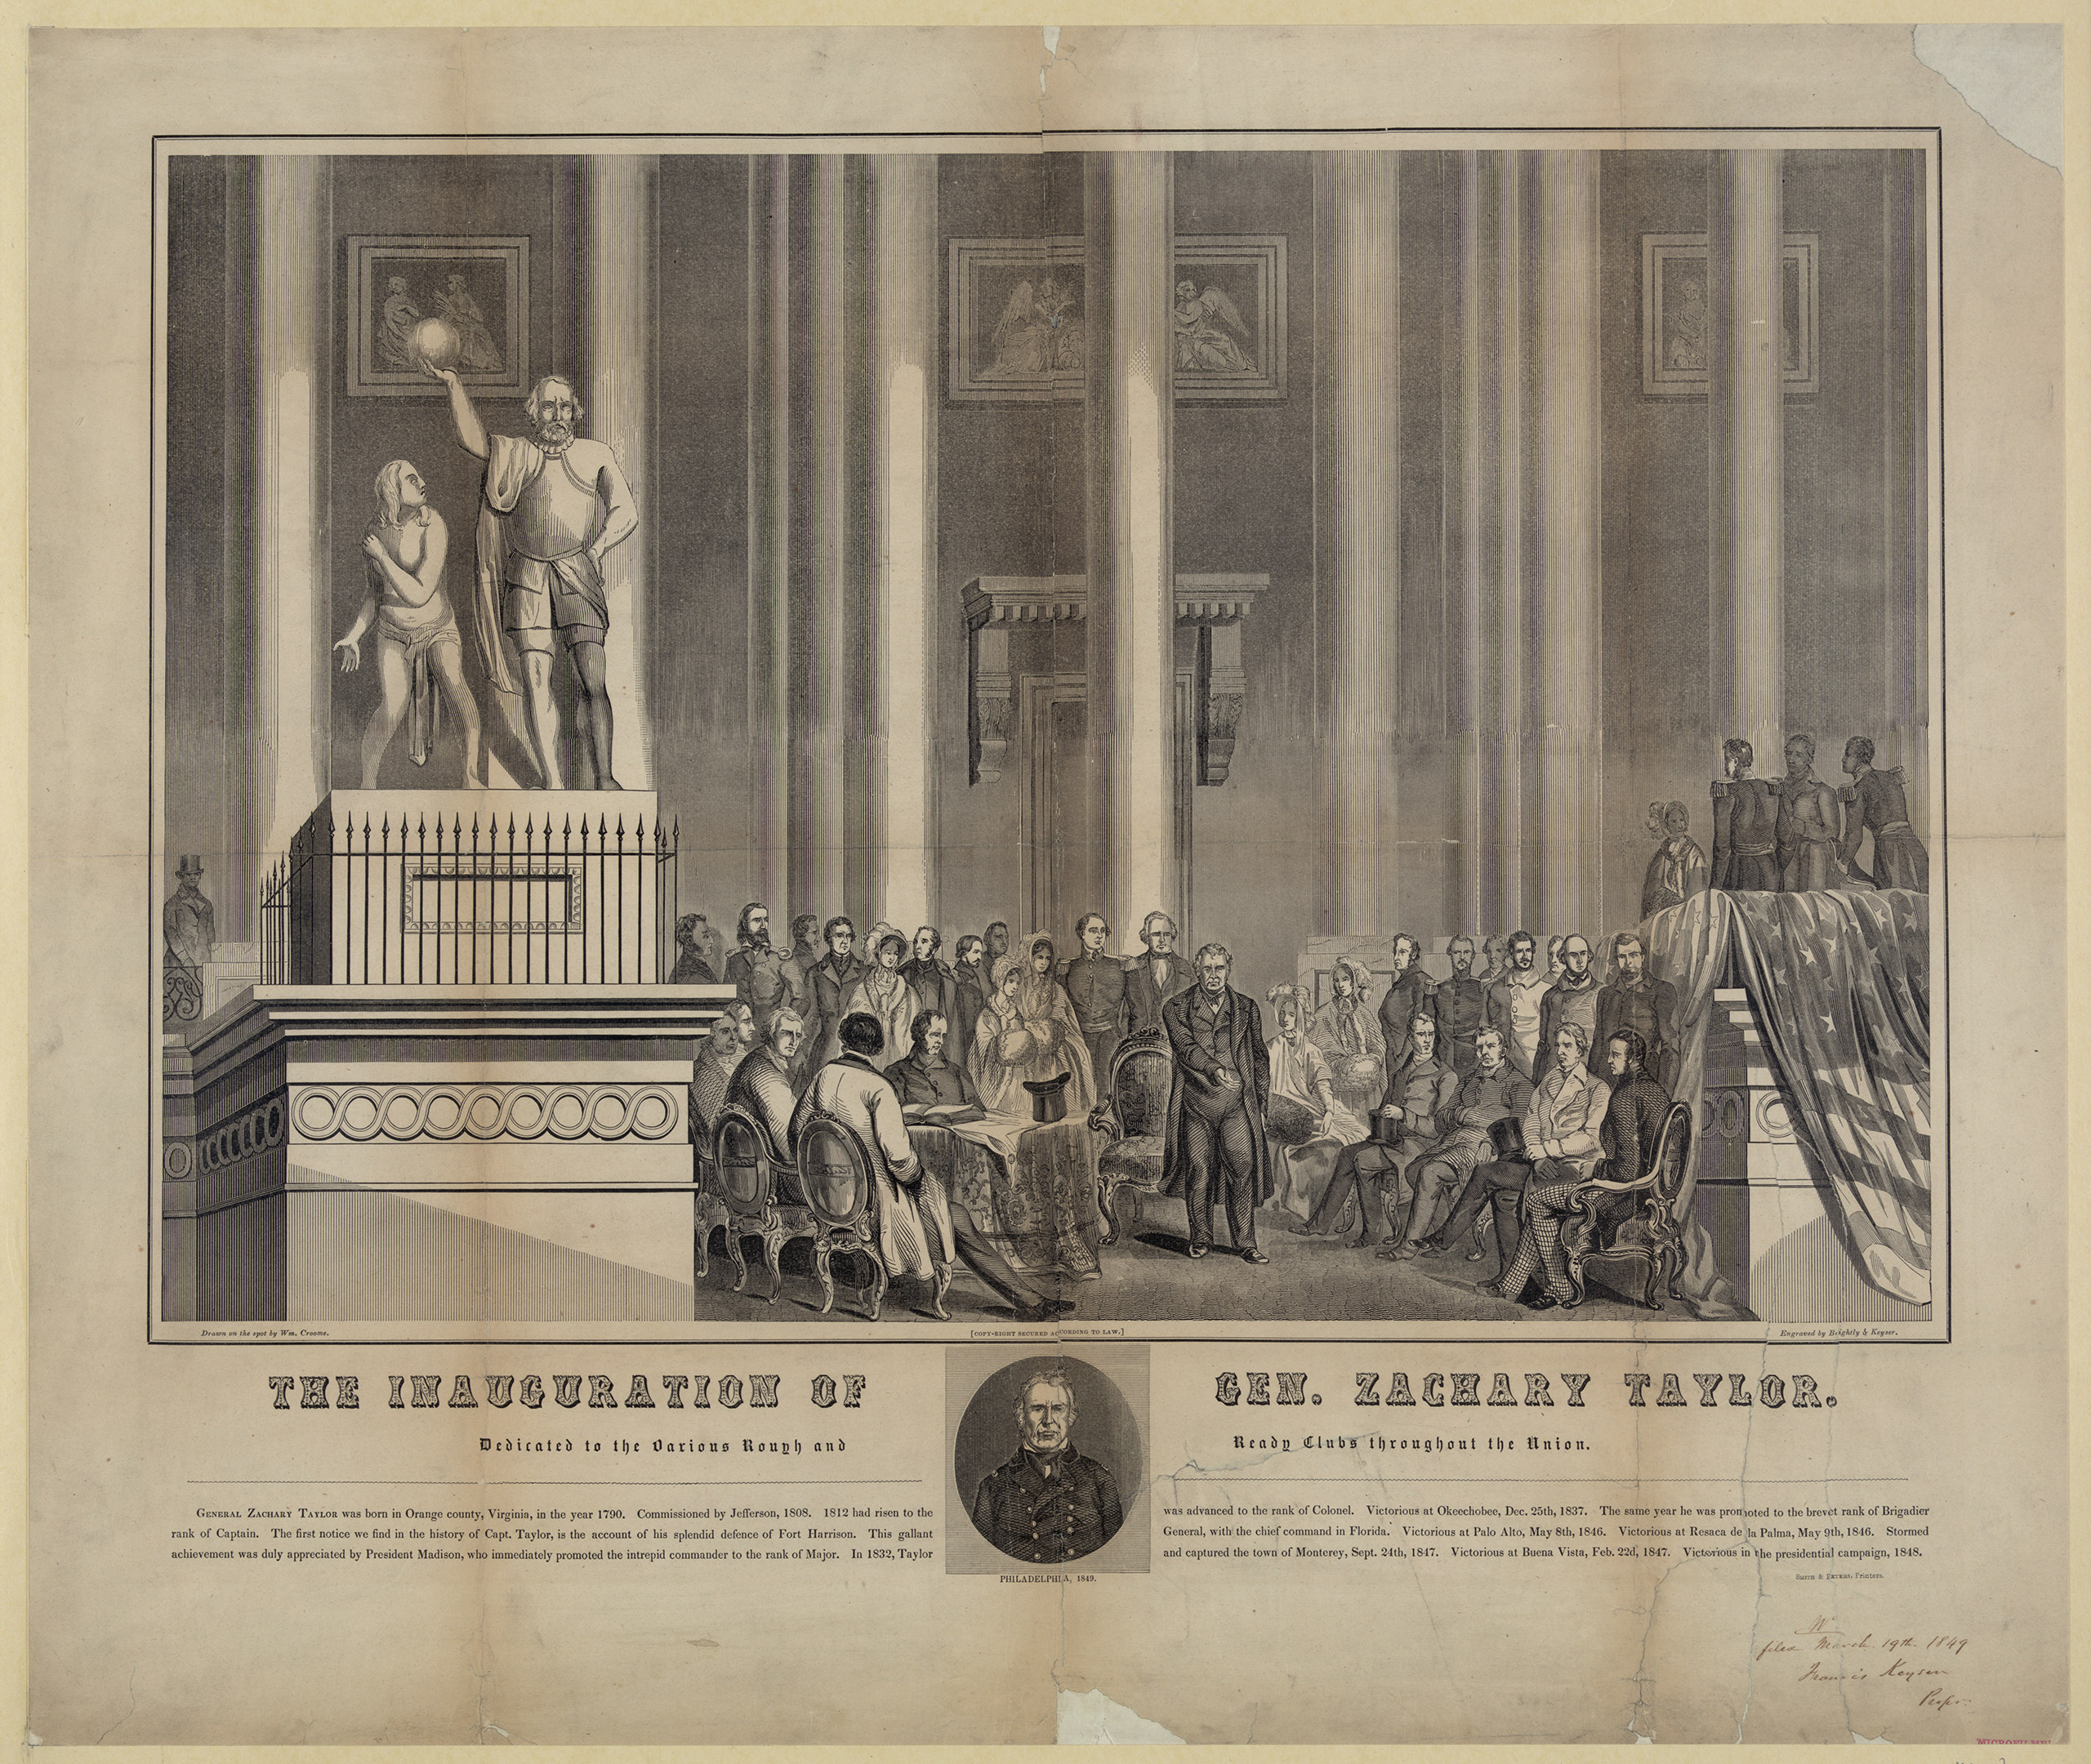 Inauguration of Zachary Taylor, 1849.